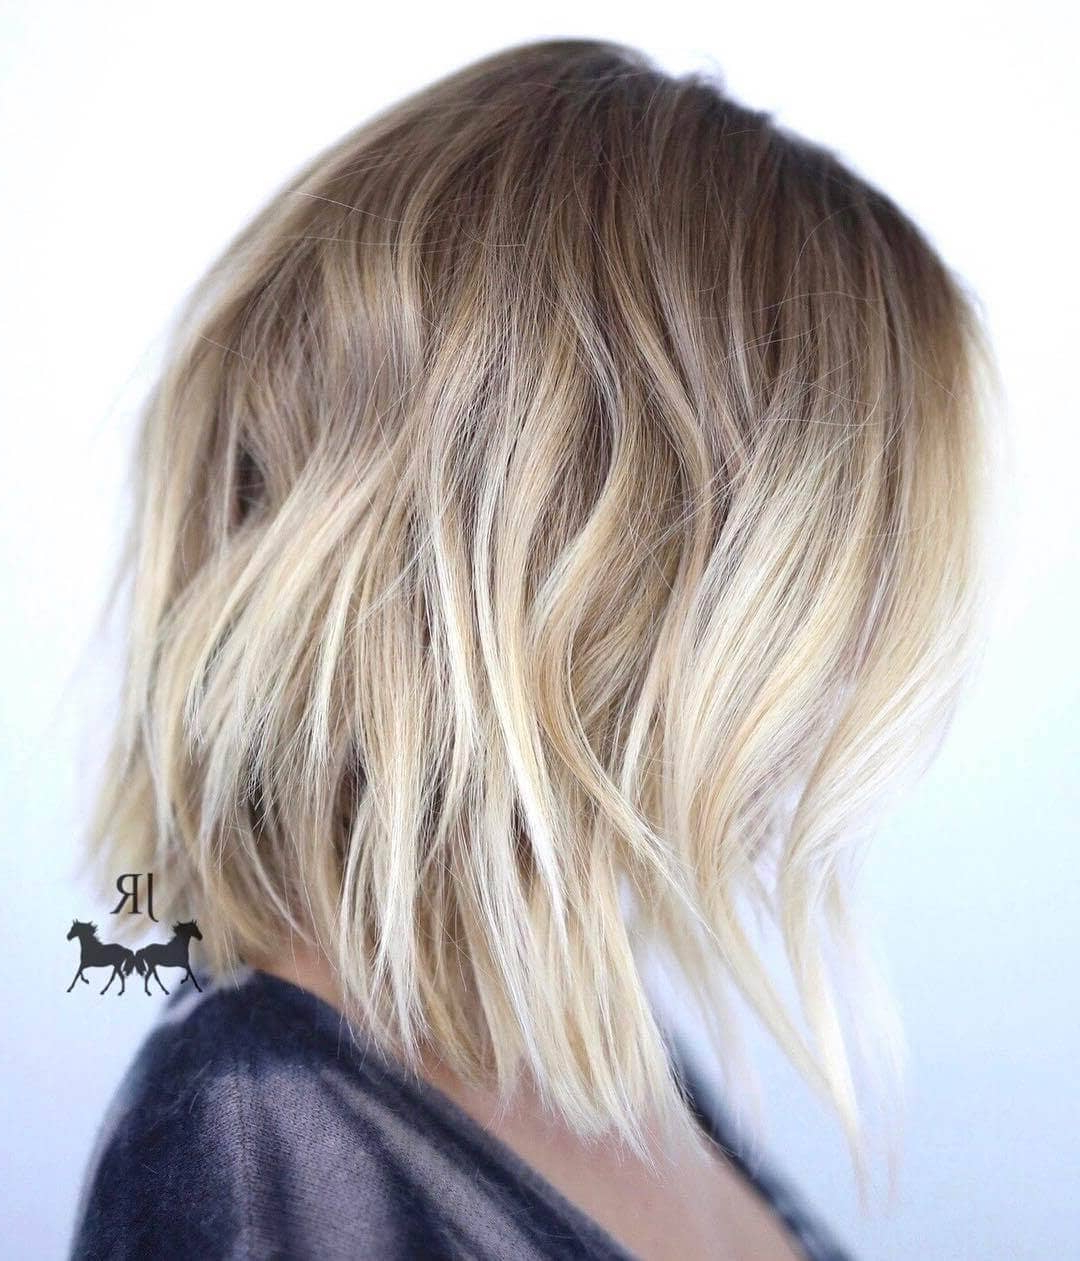 50 Fresh Short Blonde Hair Ideas To Update Your Style In 2018 In Dark Blonde Short Curly Hairstyles (View 7 of 20)